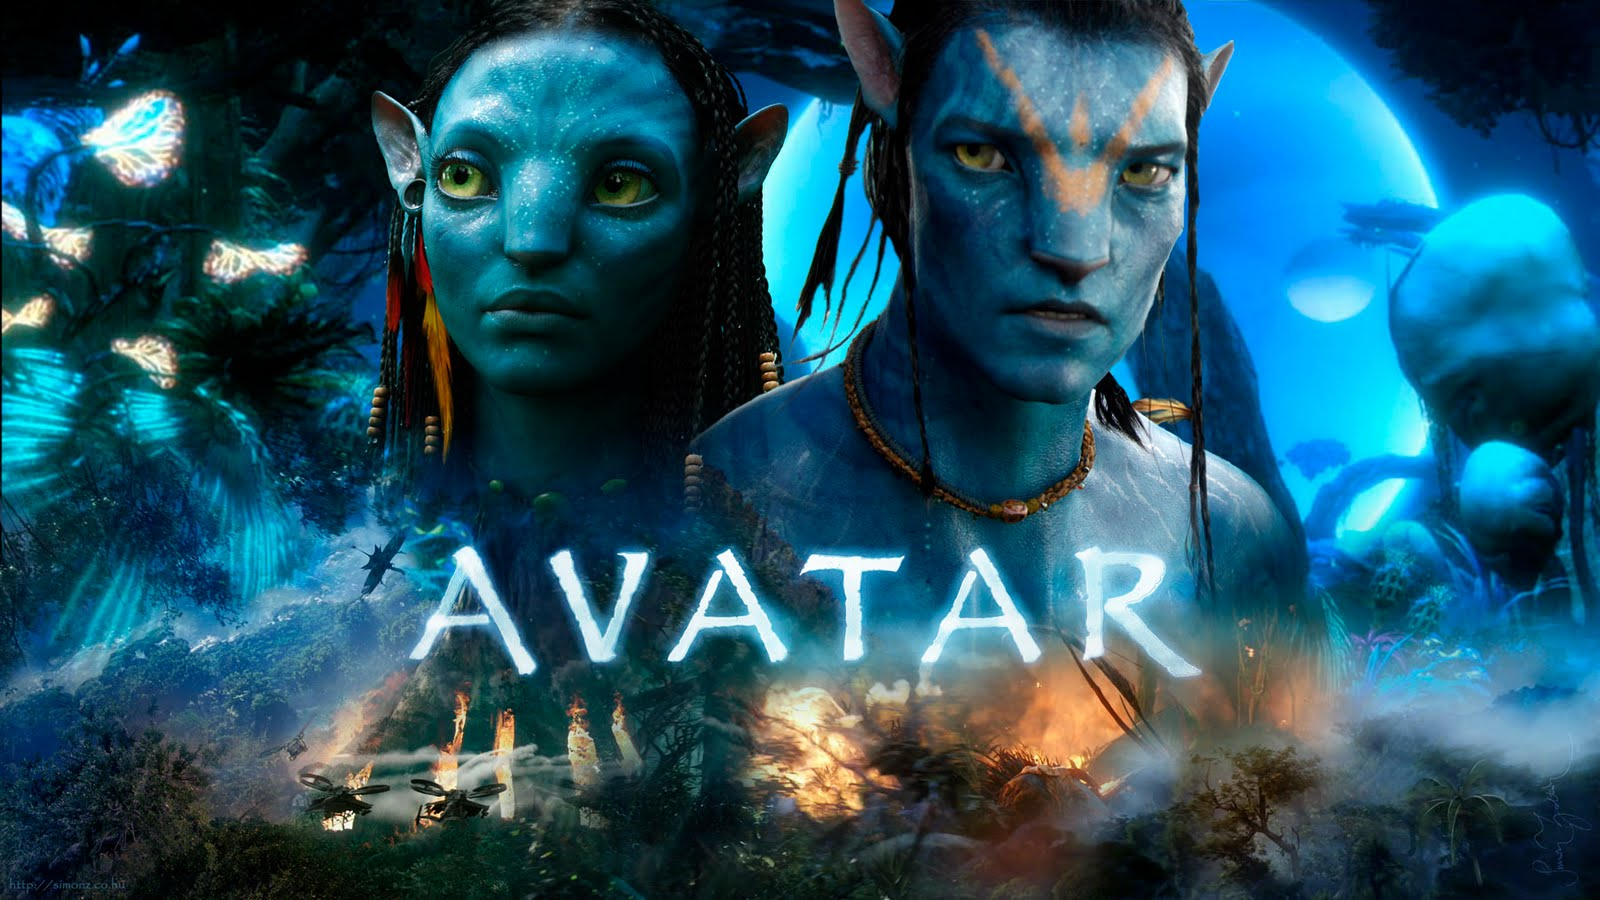 They can control us like computerized meat puppets in the movie Avatar